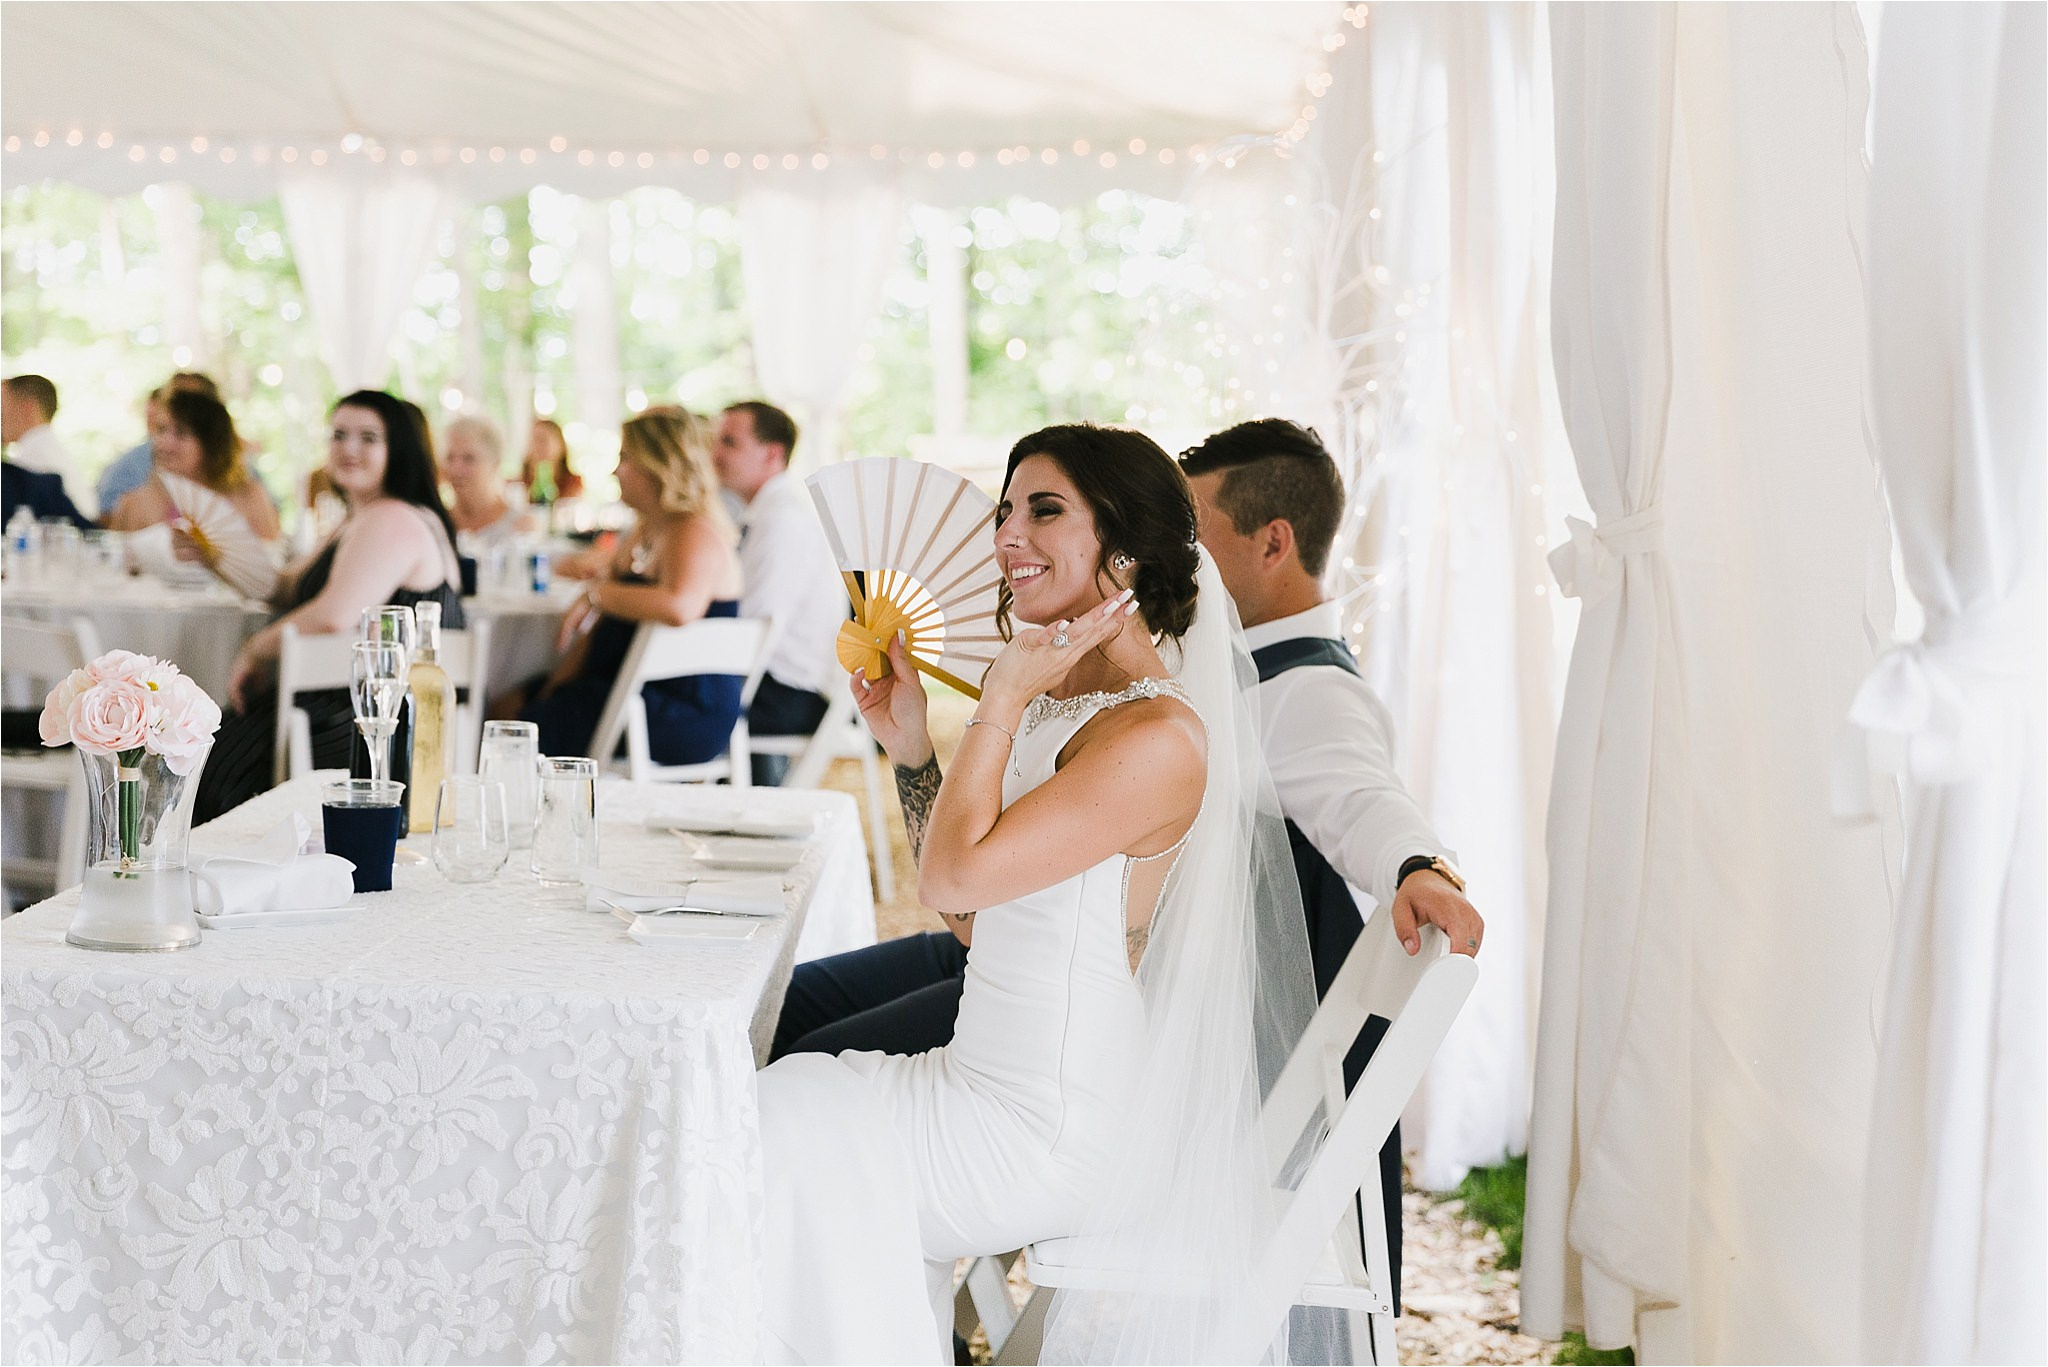 Sonia V Photography, The Clearing reception wedding venue, outdoor tent dinner, bride and groom seated at table